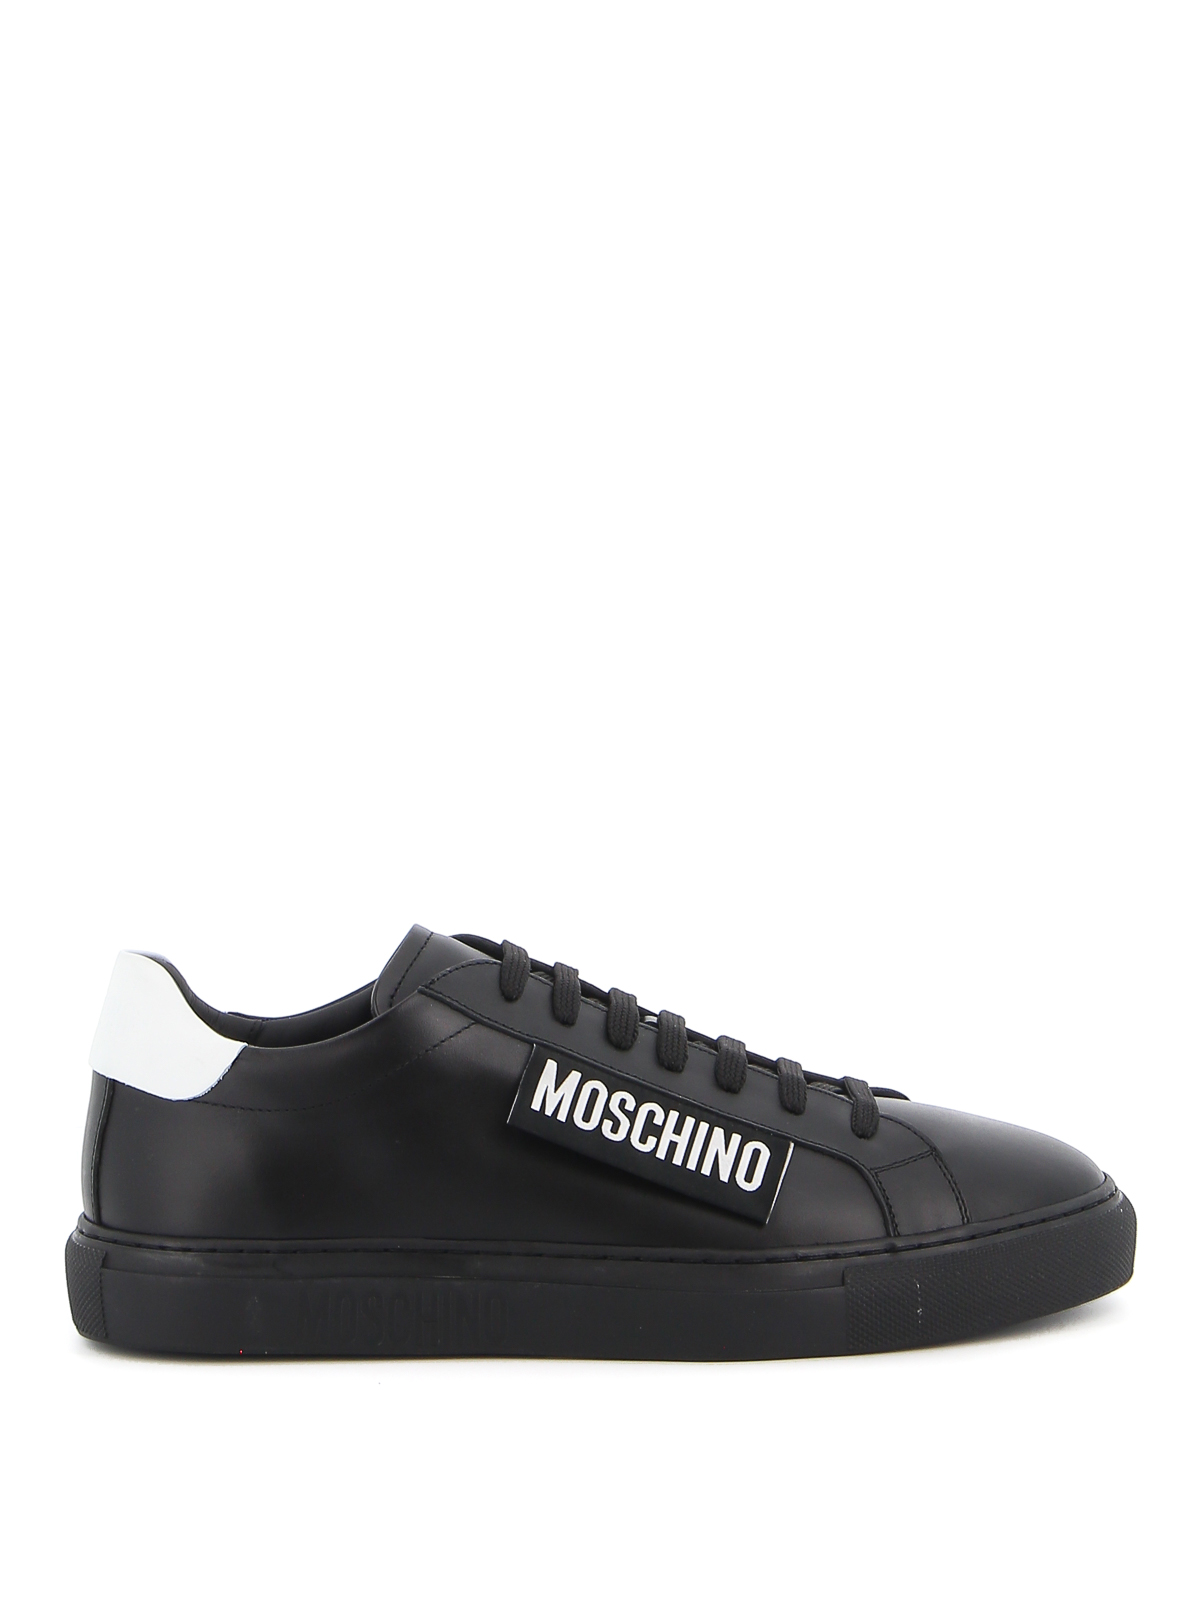 Moschino Leathers MOSCHINO LABEL SMOOTH LEATHER SNEAKERS